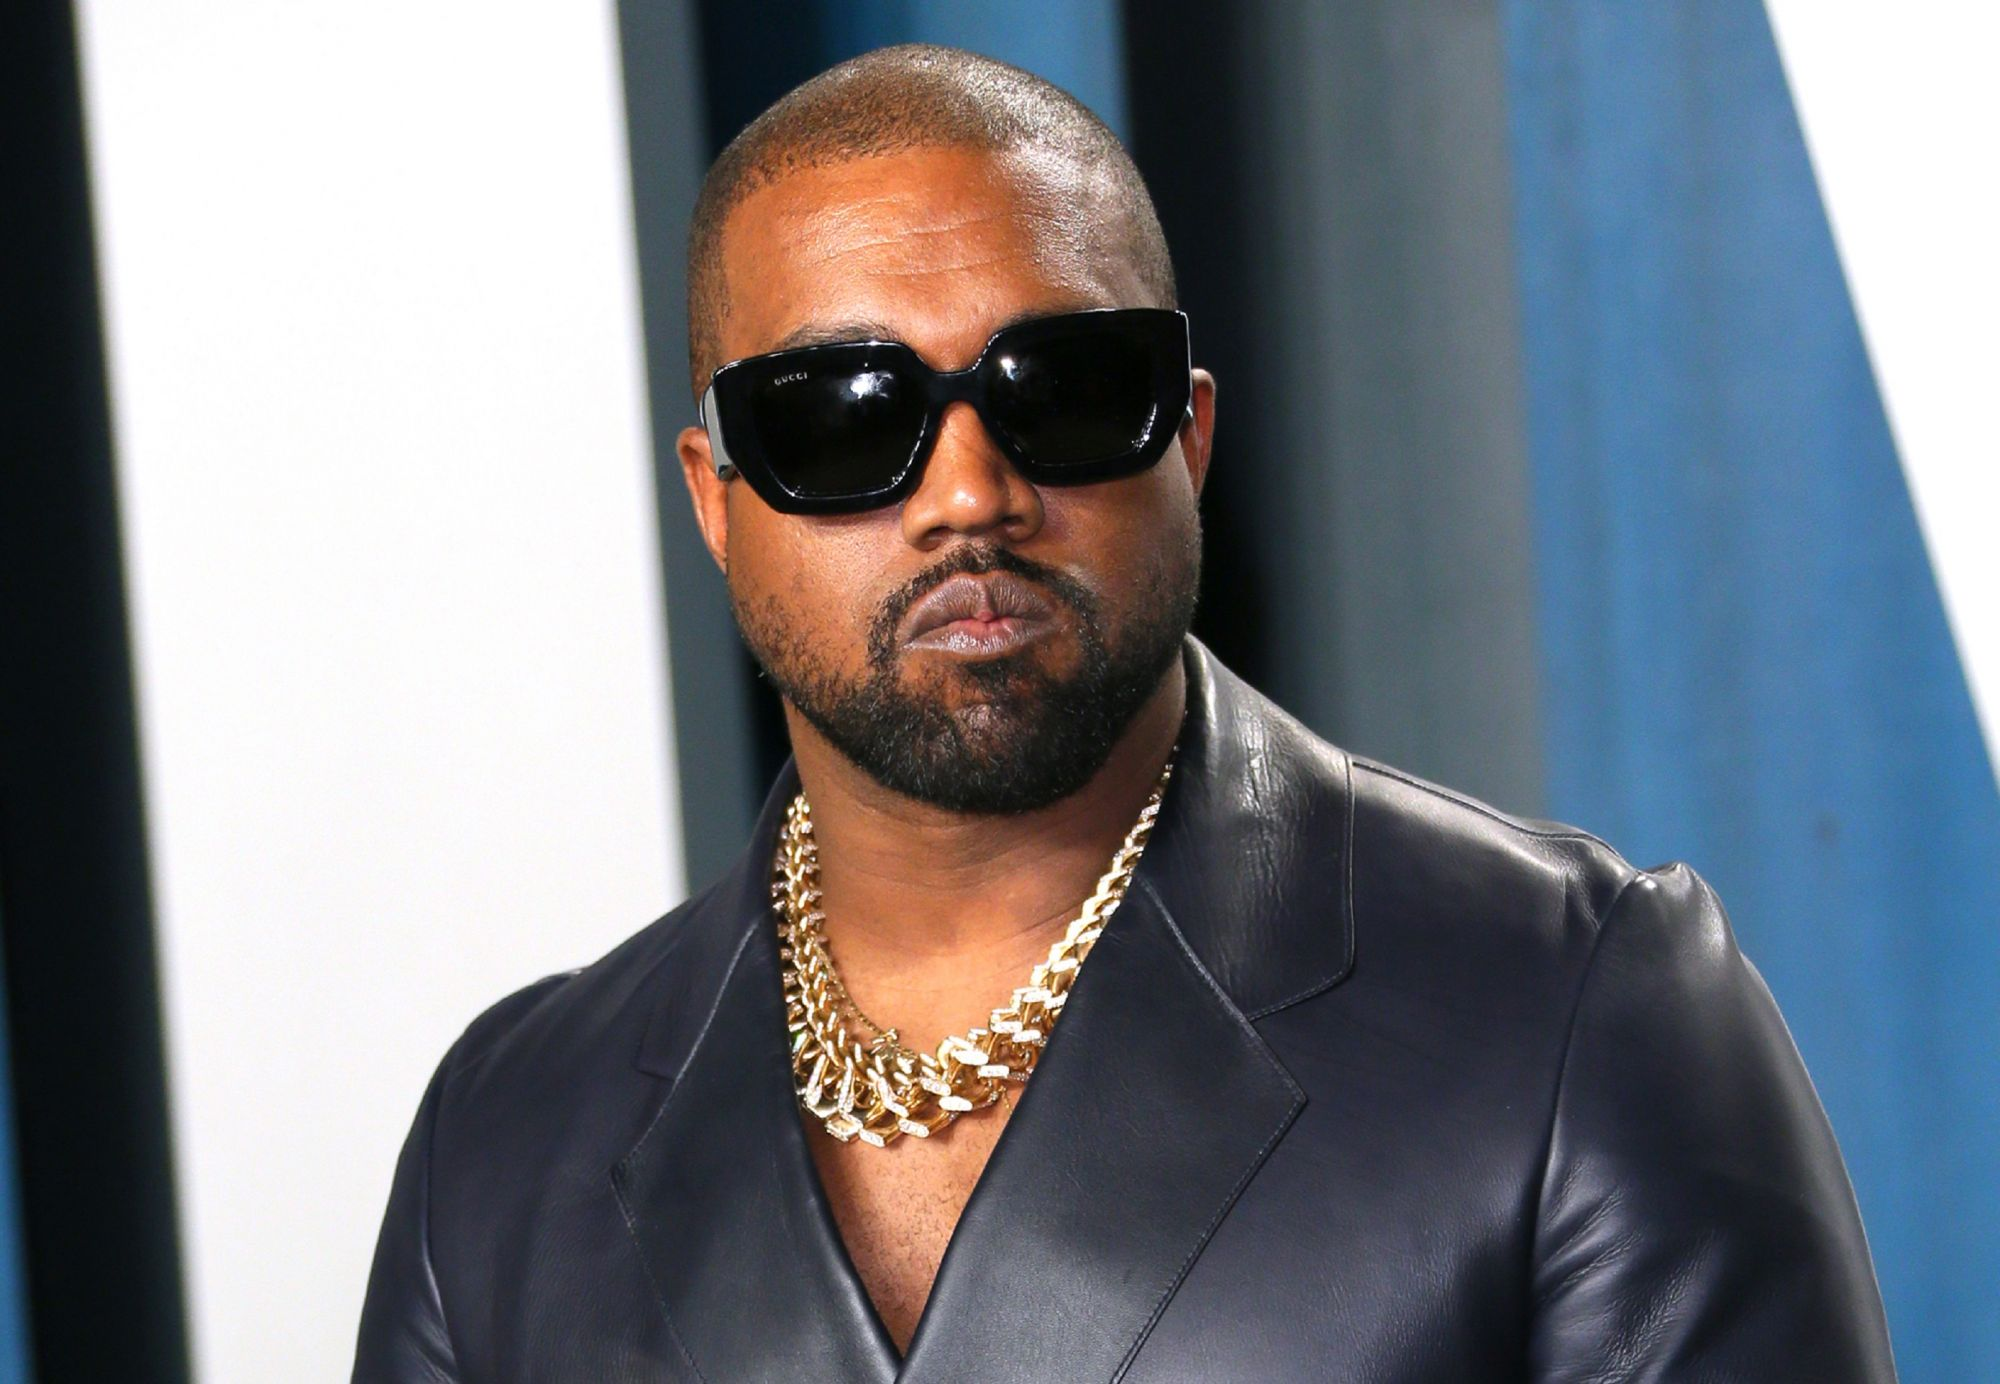 (FILES) In this file photo taken on February 9, 2020 Kanye West attends the 2020 Vanity Fair Oscar Party following the 92nd annual Oscars at The Wallis Annenberg Center for the Performing Arts in Beverly Hills. - US rapper and apparent presidential candidate Kanye West has in the past opened up about his struggles with bipolar disorder. But his recent erratic behavior has again called into question his health and treatment. He launched his election campaign on July 19, 2020 with a rambling speech that saw h